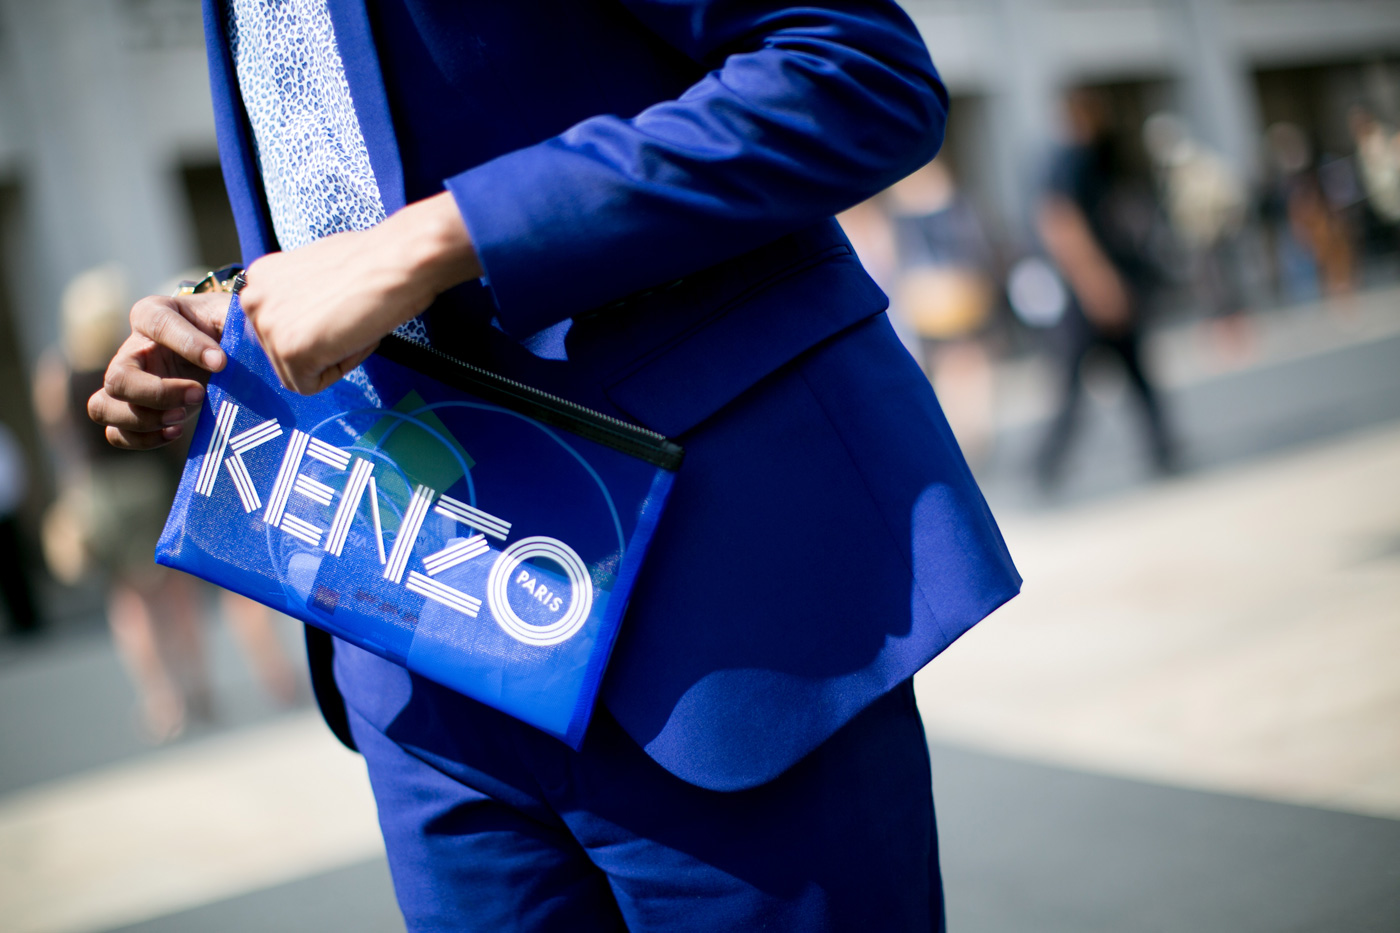 kenzomeshpouch 12 Designer Pouches Worth Splurging On This Fall